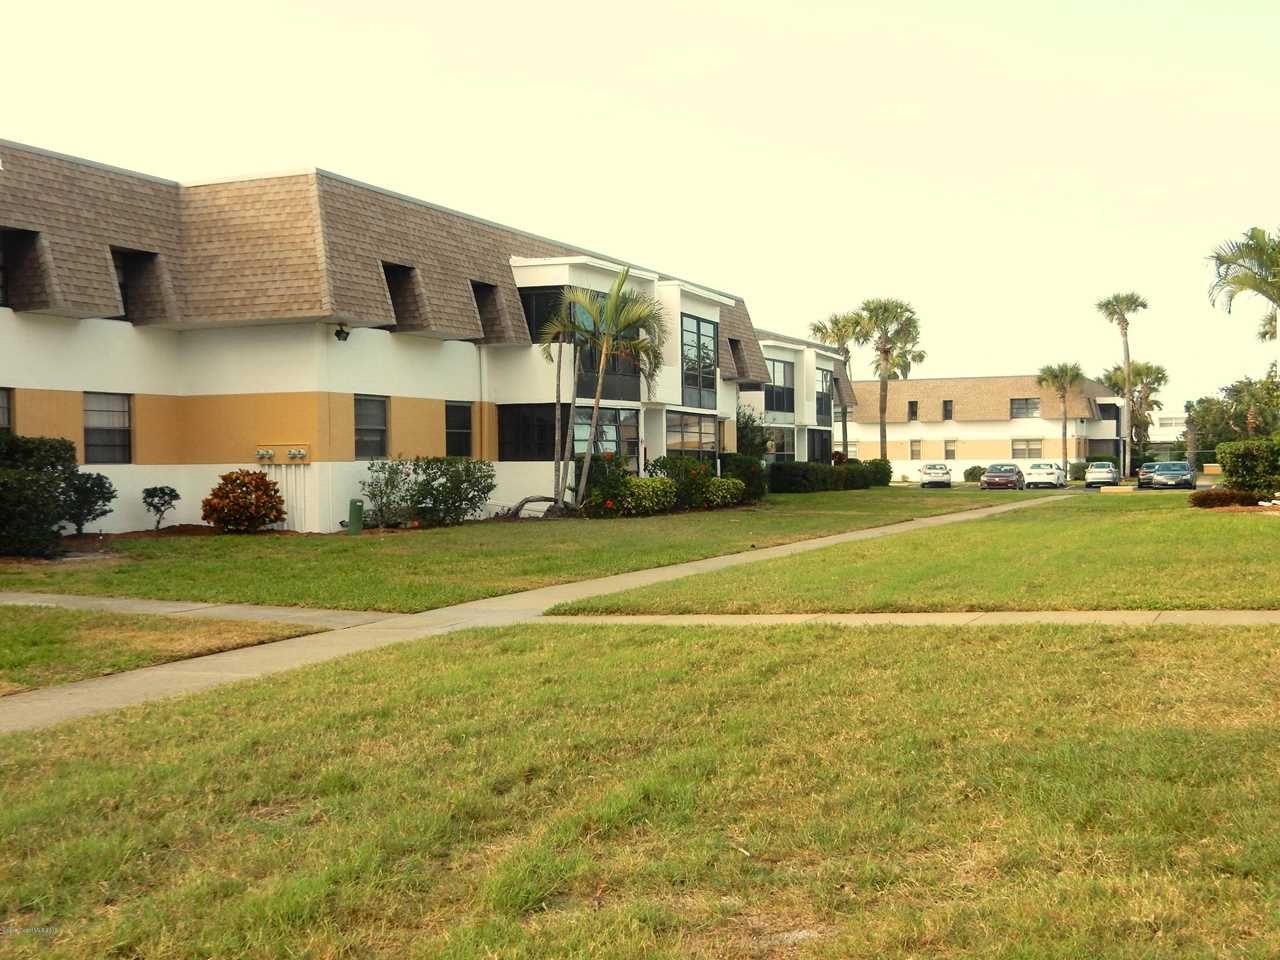 2700 N Highway A1A #11106 Indialantic, FL 32903 | MLS 839122 Photo 1